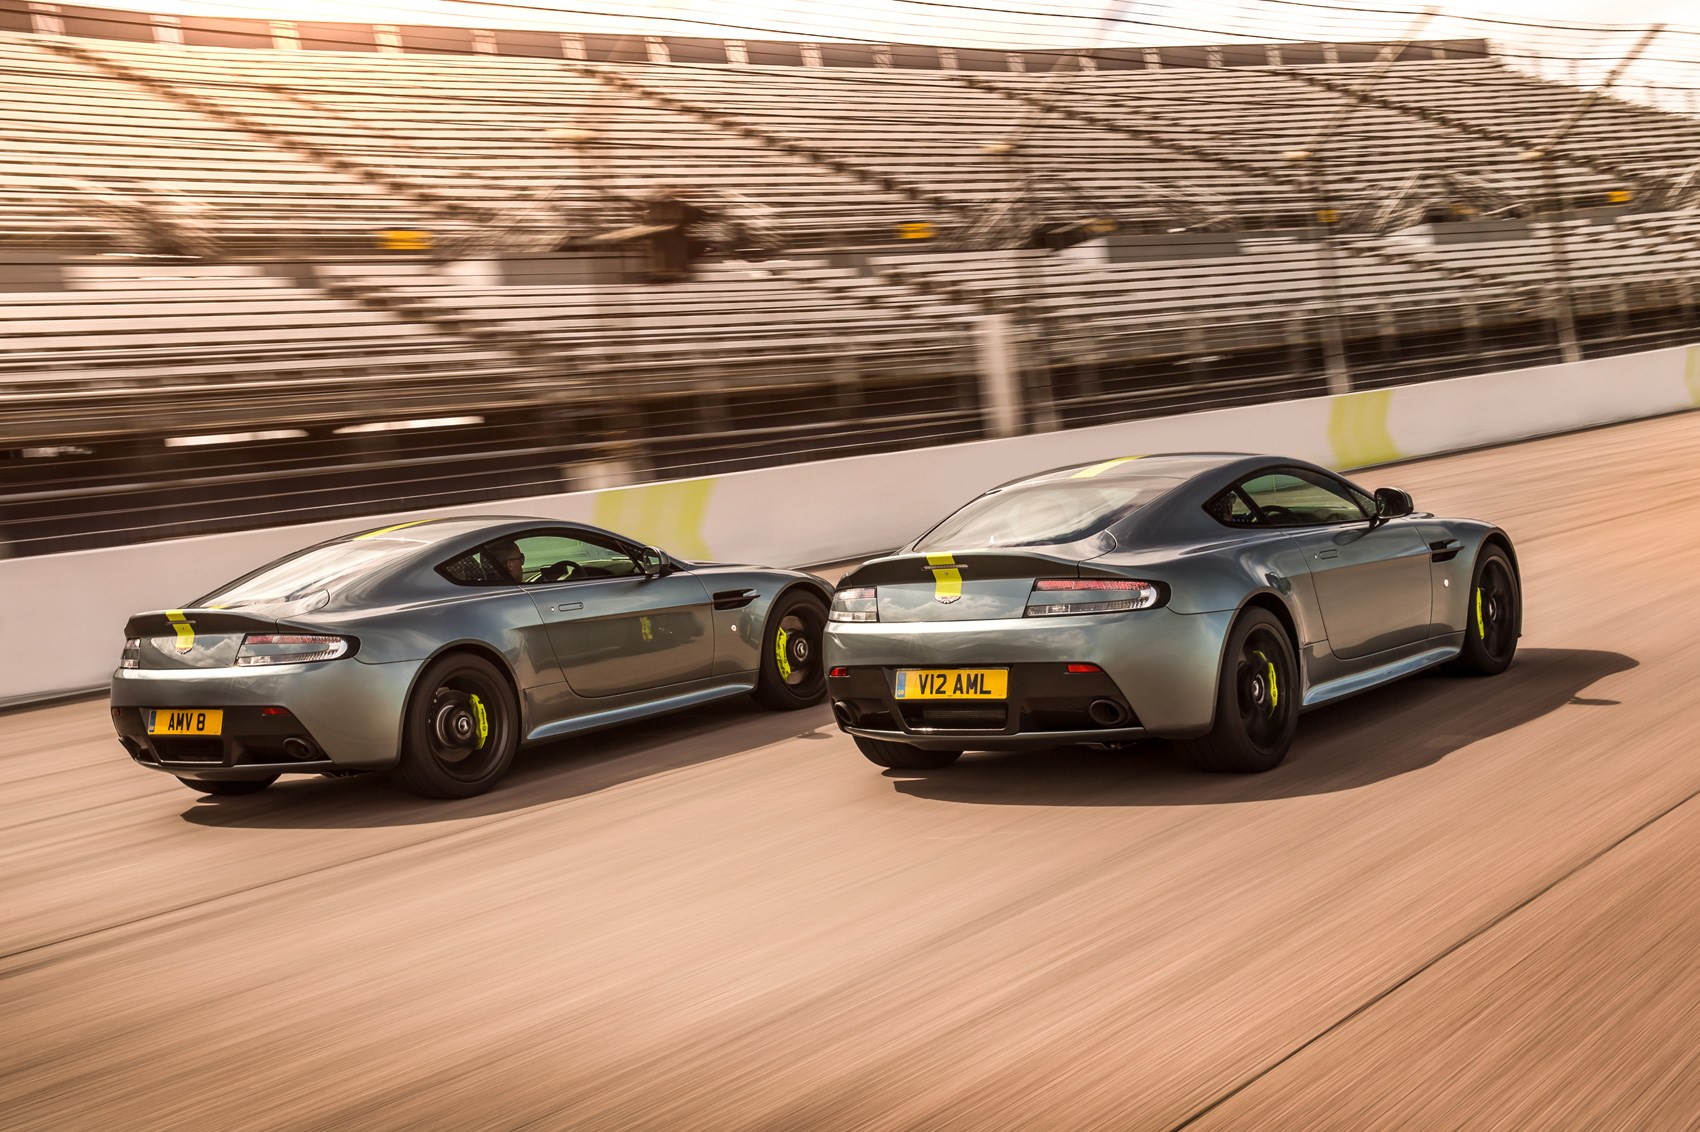 Aston Martin unleashes most powerful Vantage V12 ever